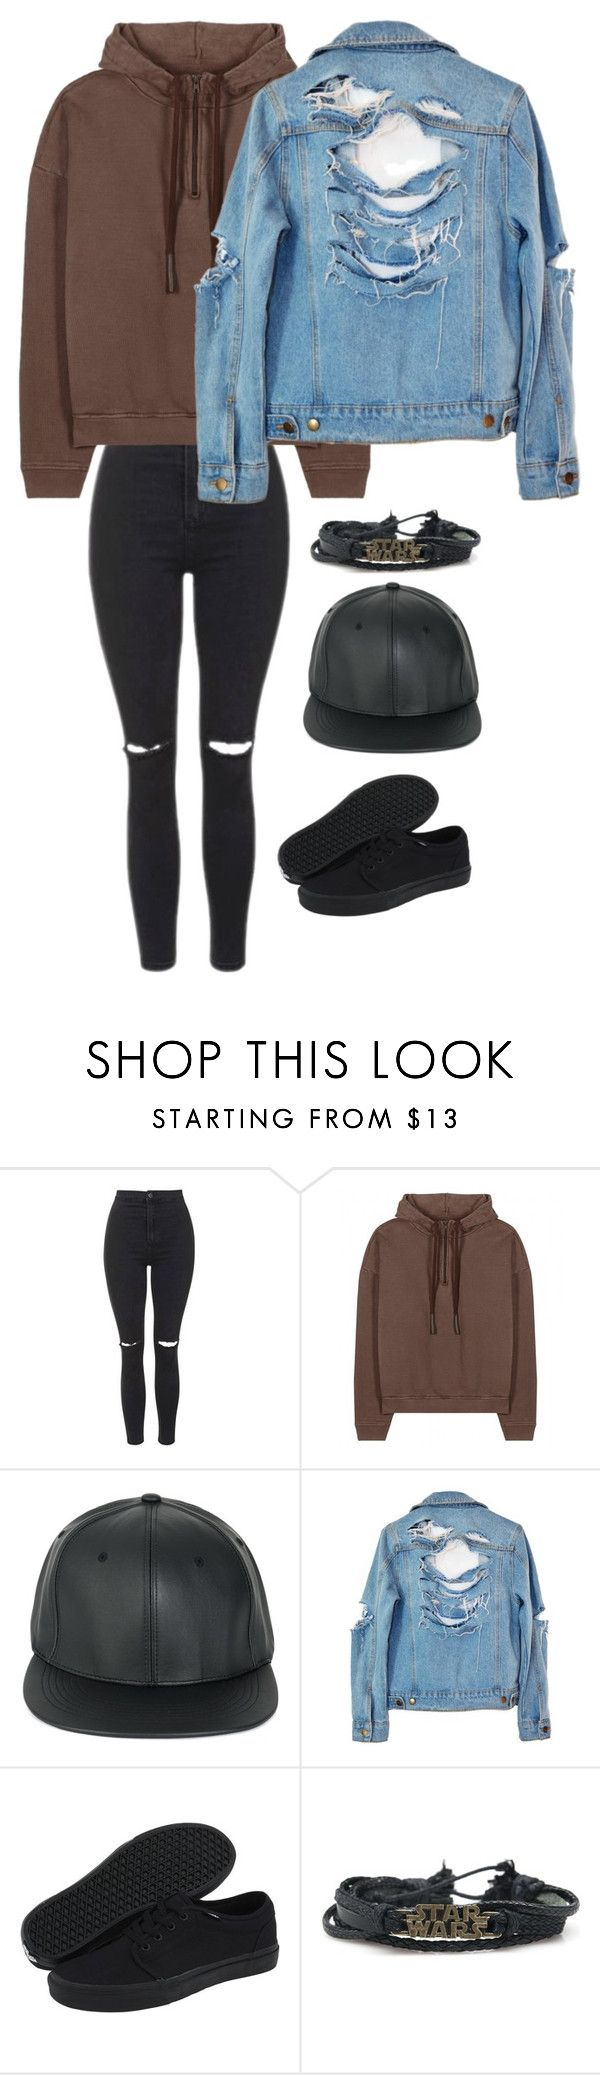 """""""Untitled #253"""" by niki-bogner ❤ liked on Polyvore featuring Topshop, adidas Originals, High Heels Suicide and Vans"""